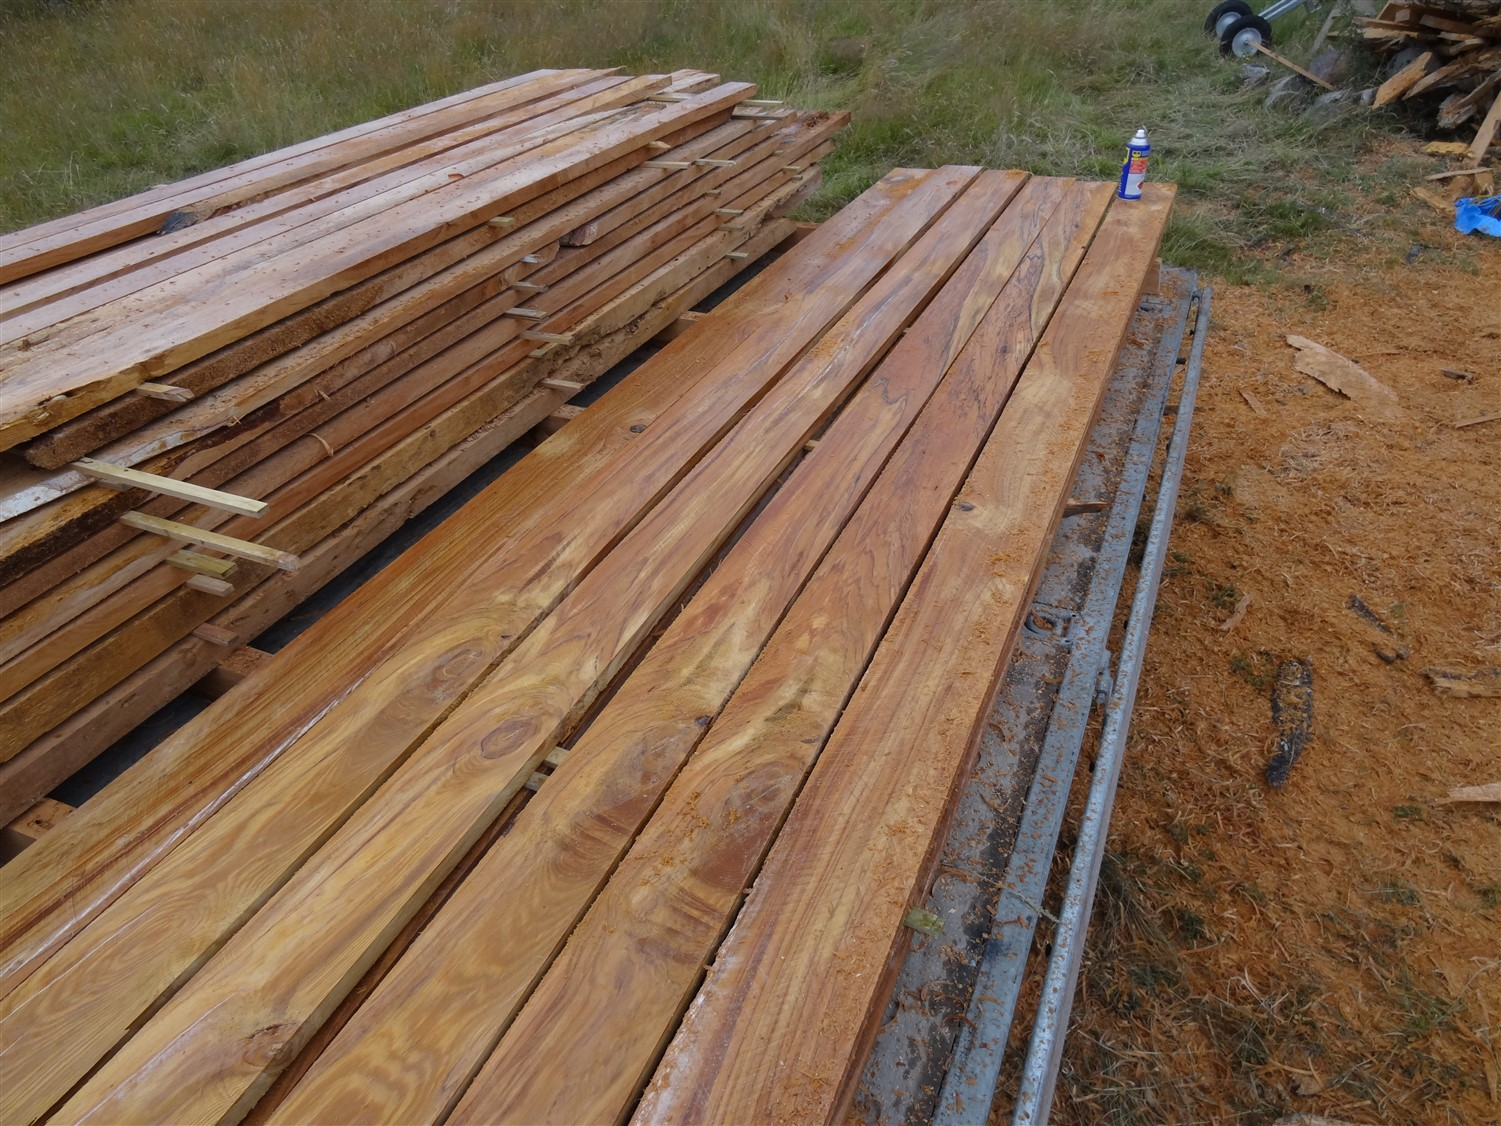 07_RimuReclaimed100mmx15mmPlanks.jpg